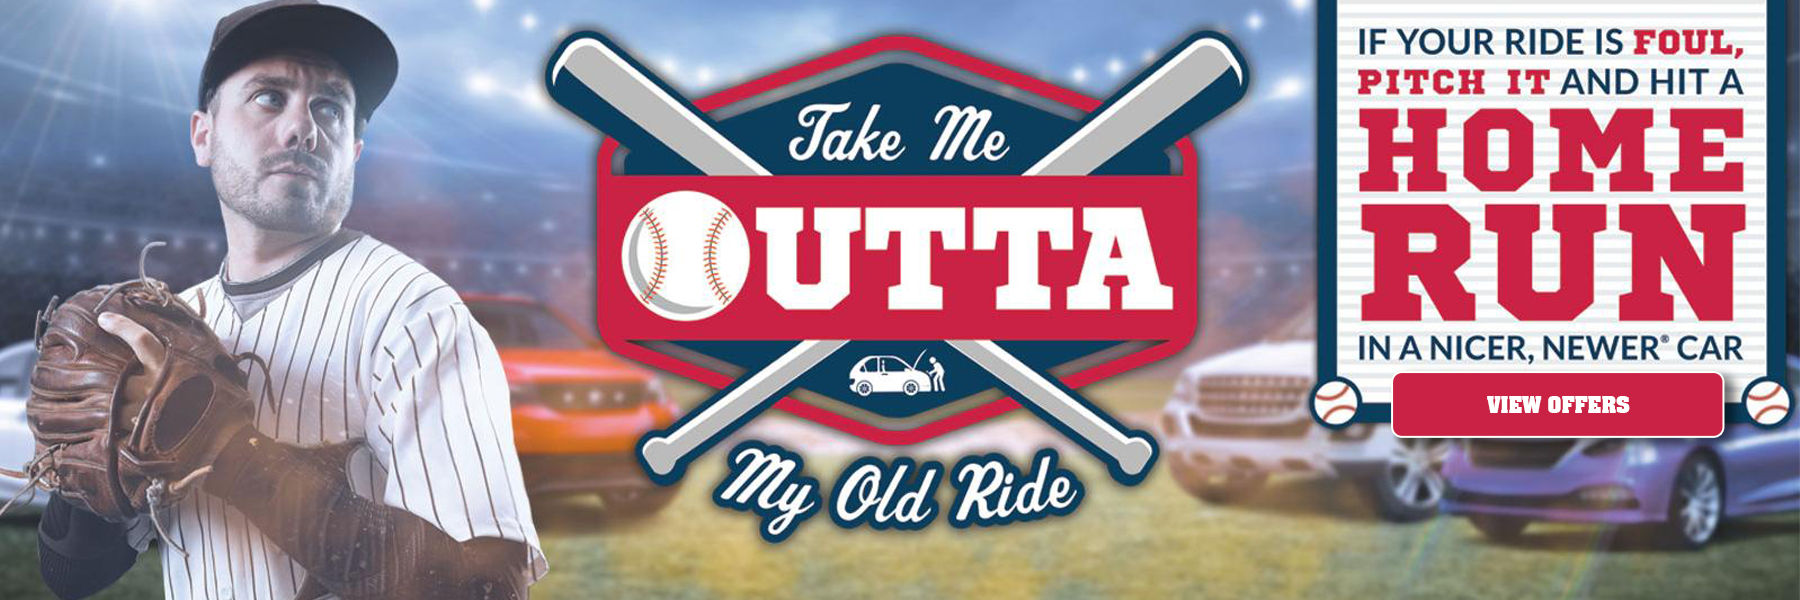 Take Me Outta My Old Ride